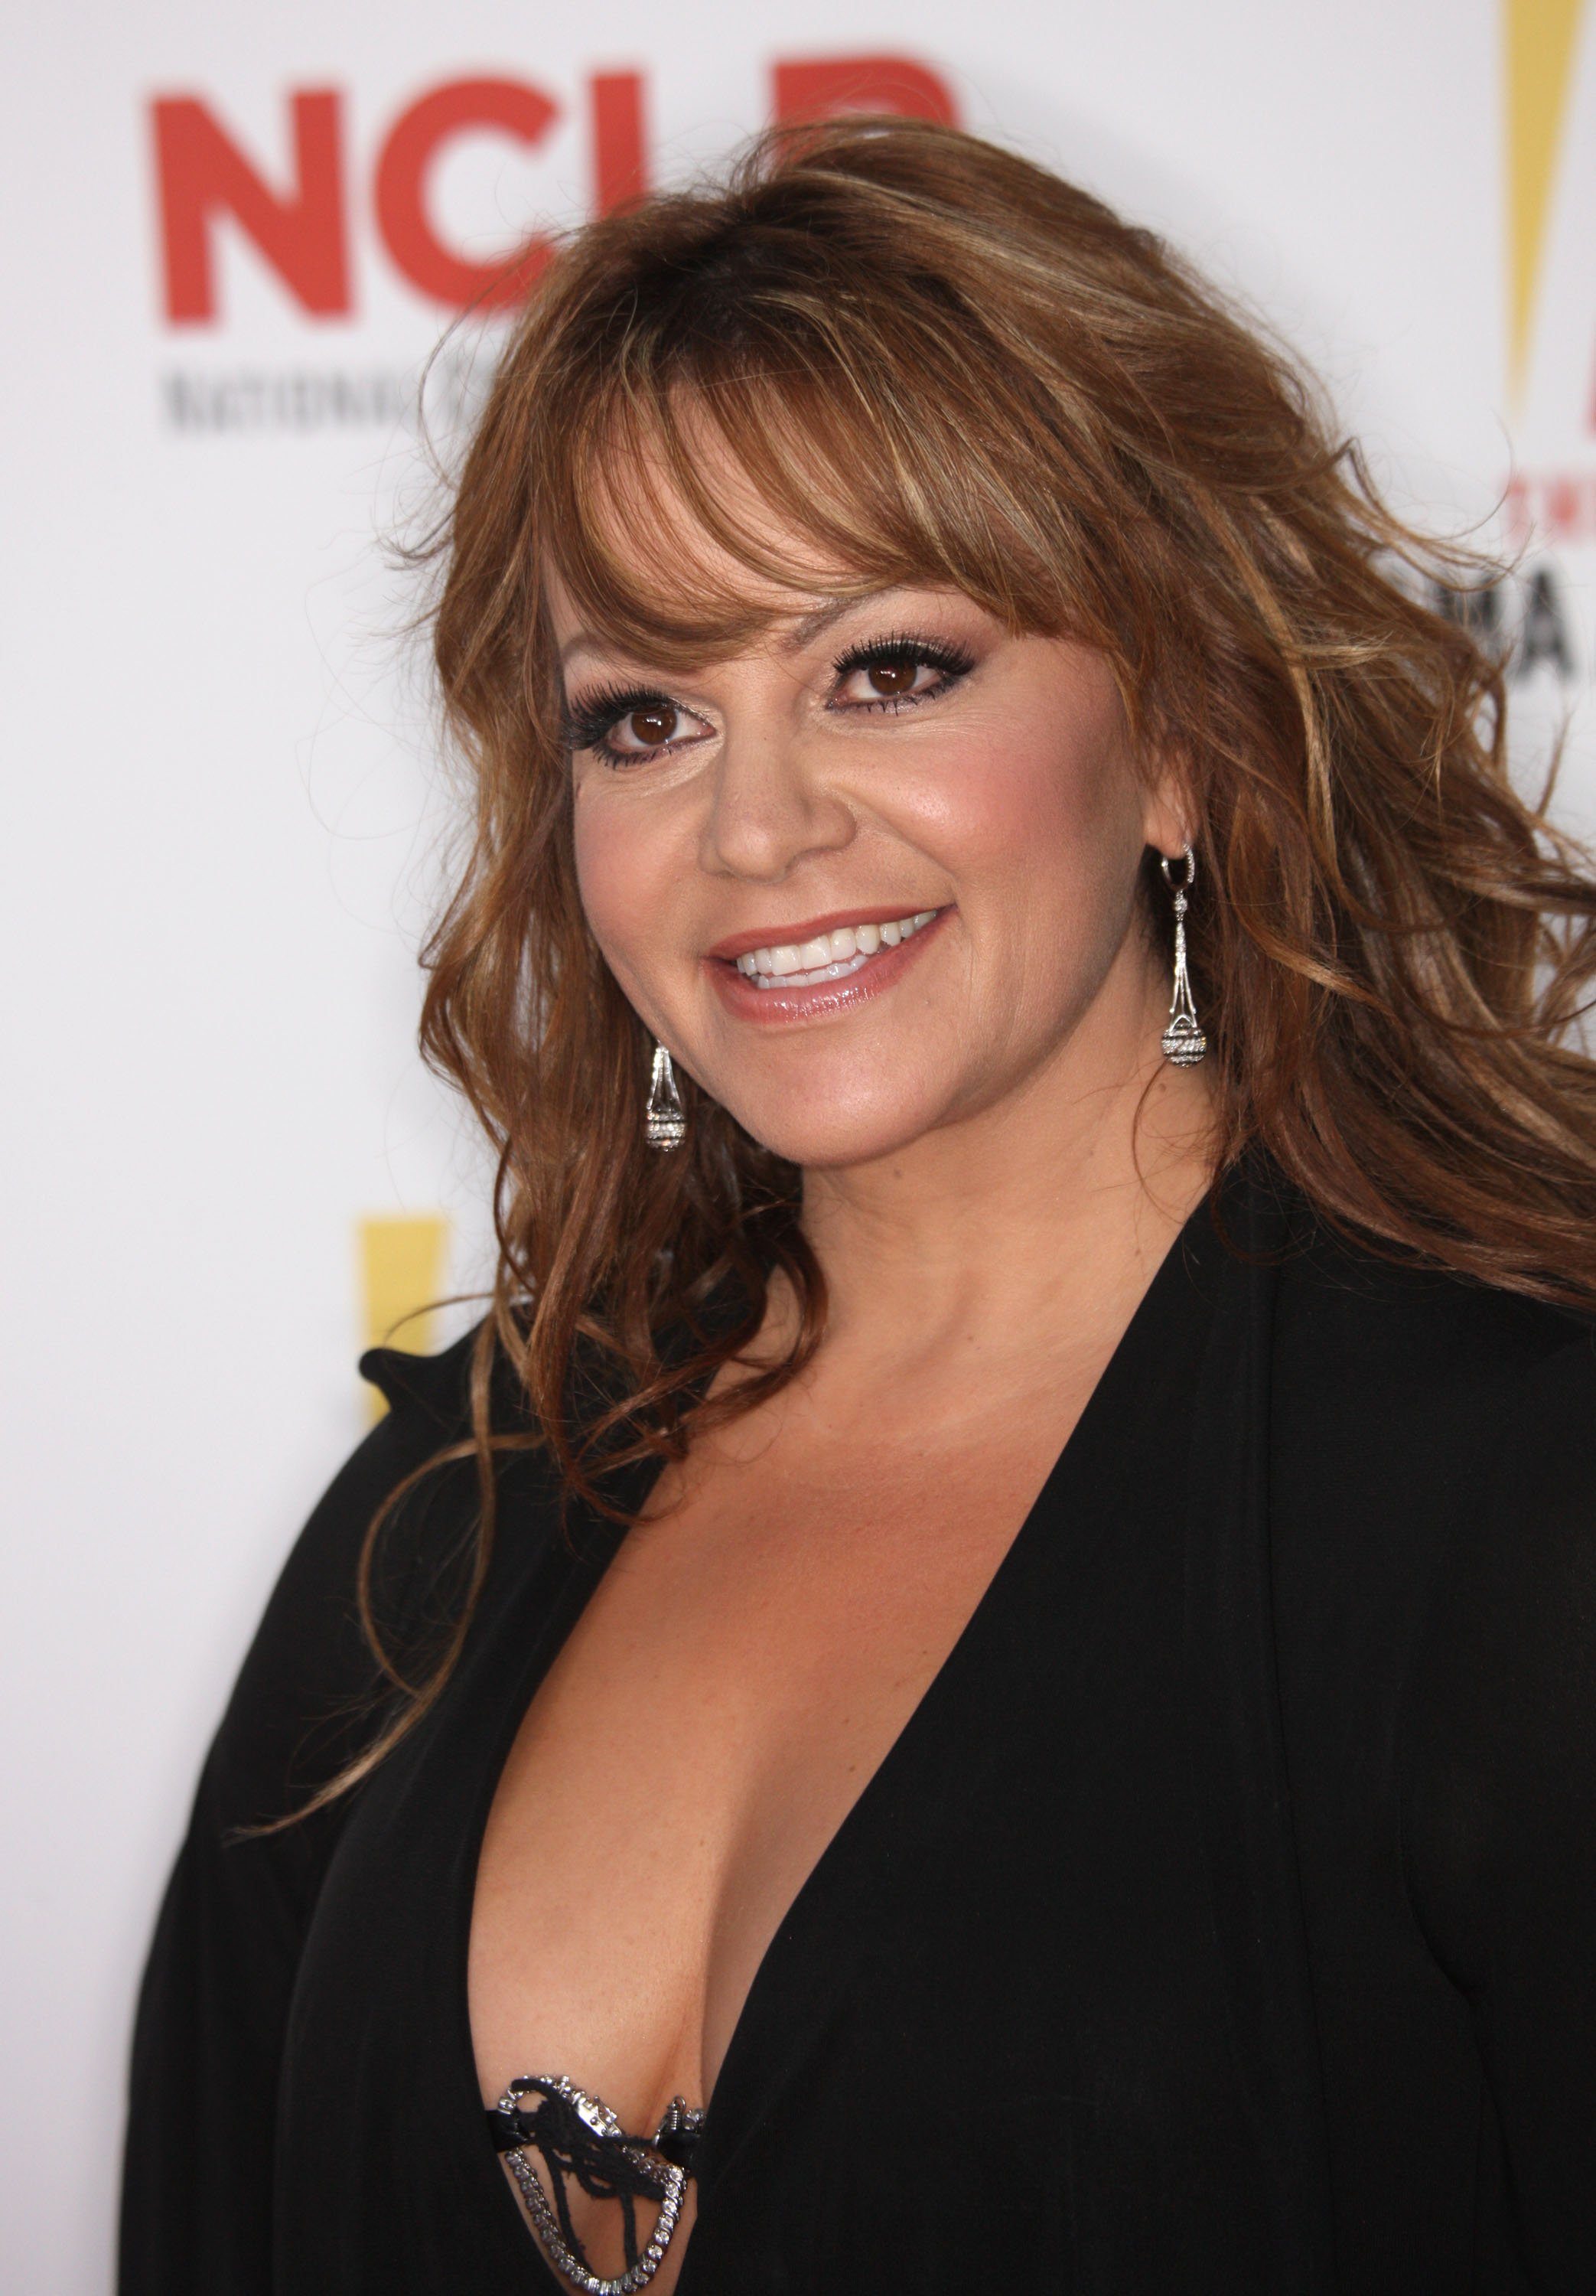 Singer Jenni Rivera arrives at the 2009 ALMA Awards held at Royce Hall. | Photo: Getty Images